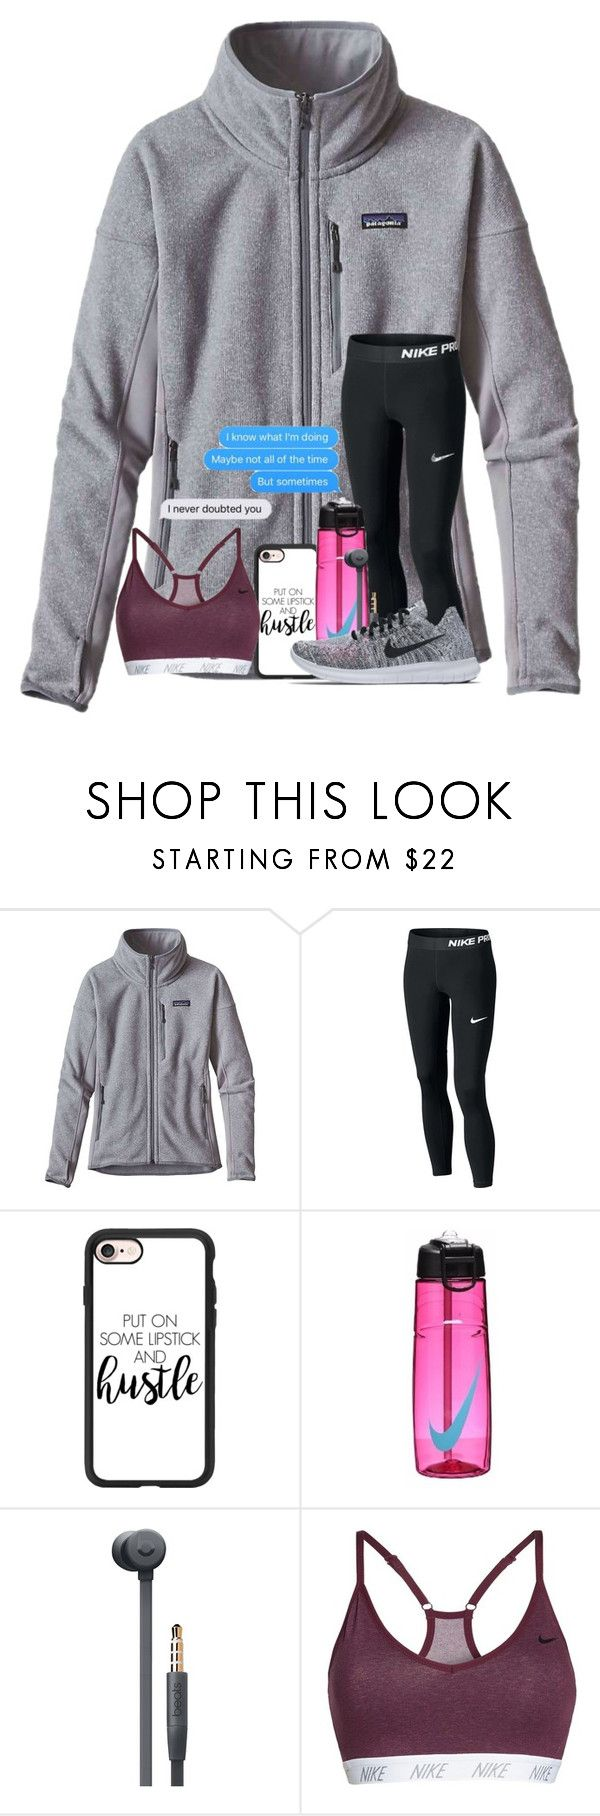 """QOTD"" by cassieq6929 ❤ liked on Polyvore featuring Patagonia, Casetify, NIKE, Beats by Dr. Dre and Bodhi"